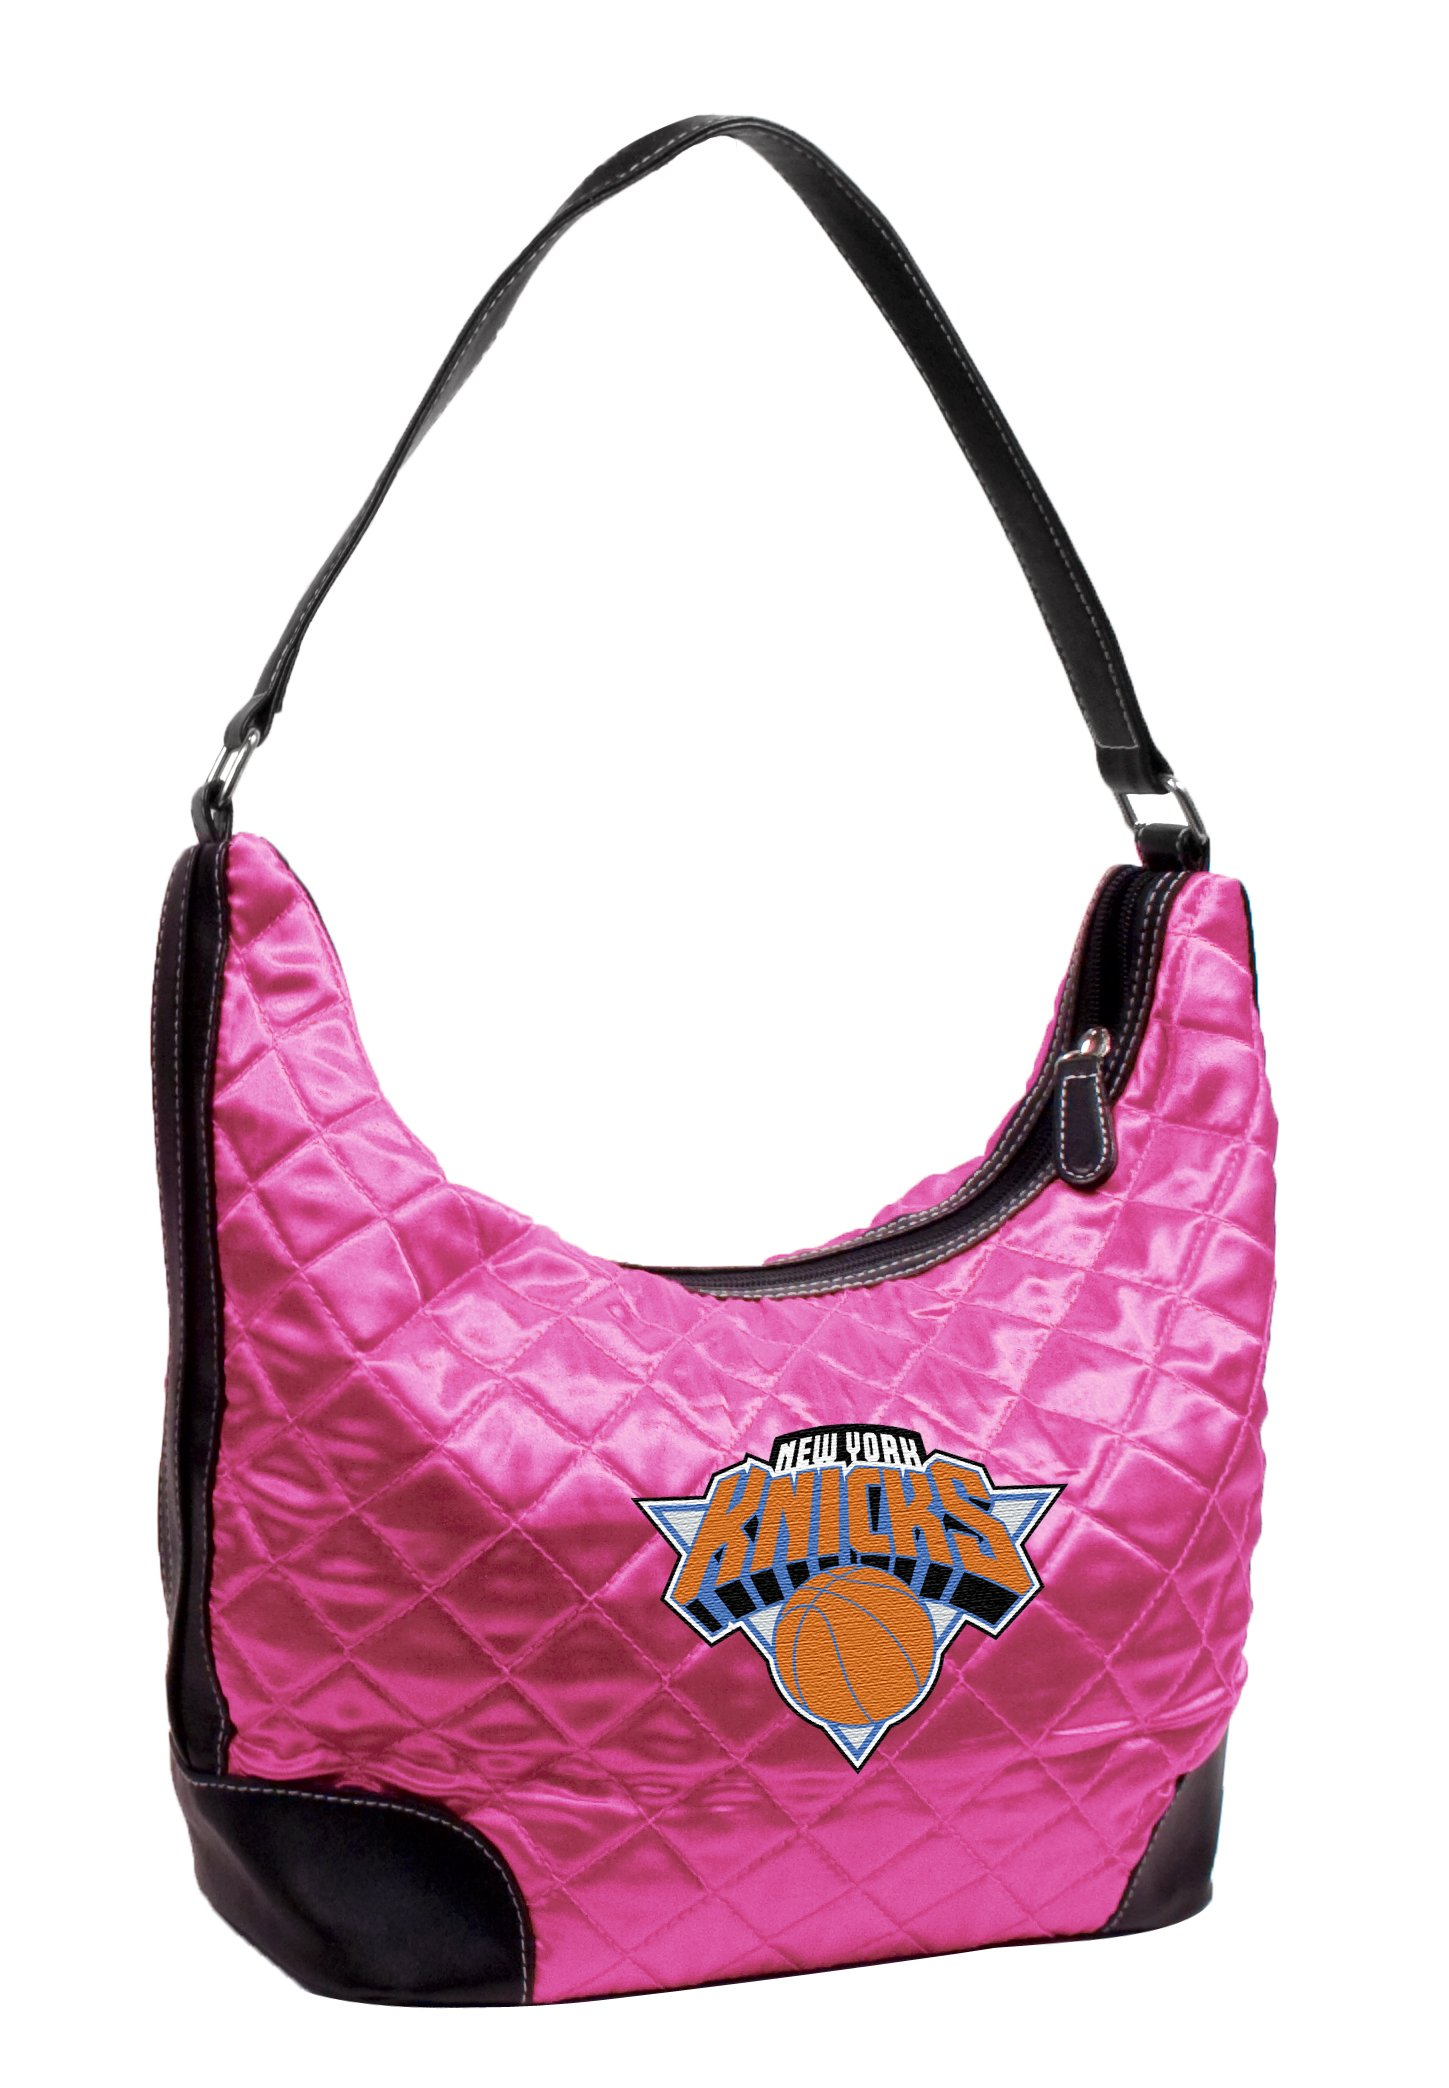 NBA New York Knicks Quilted Hobo